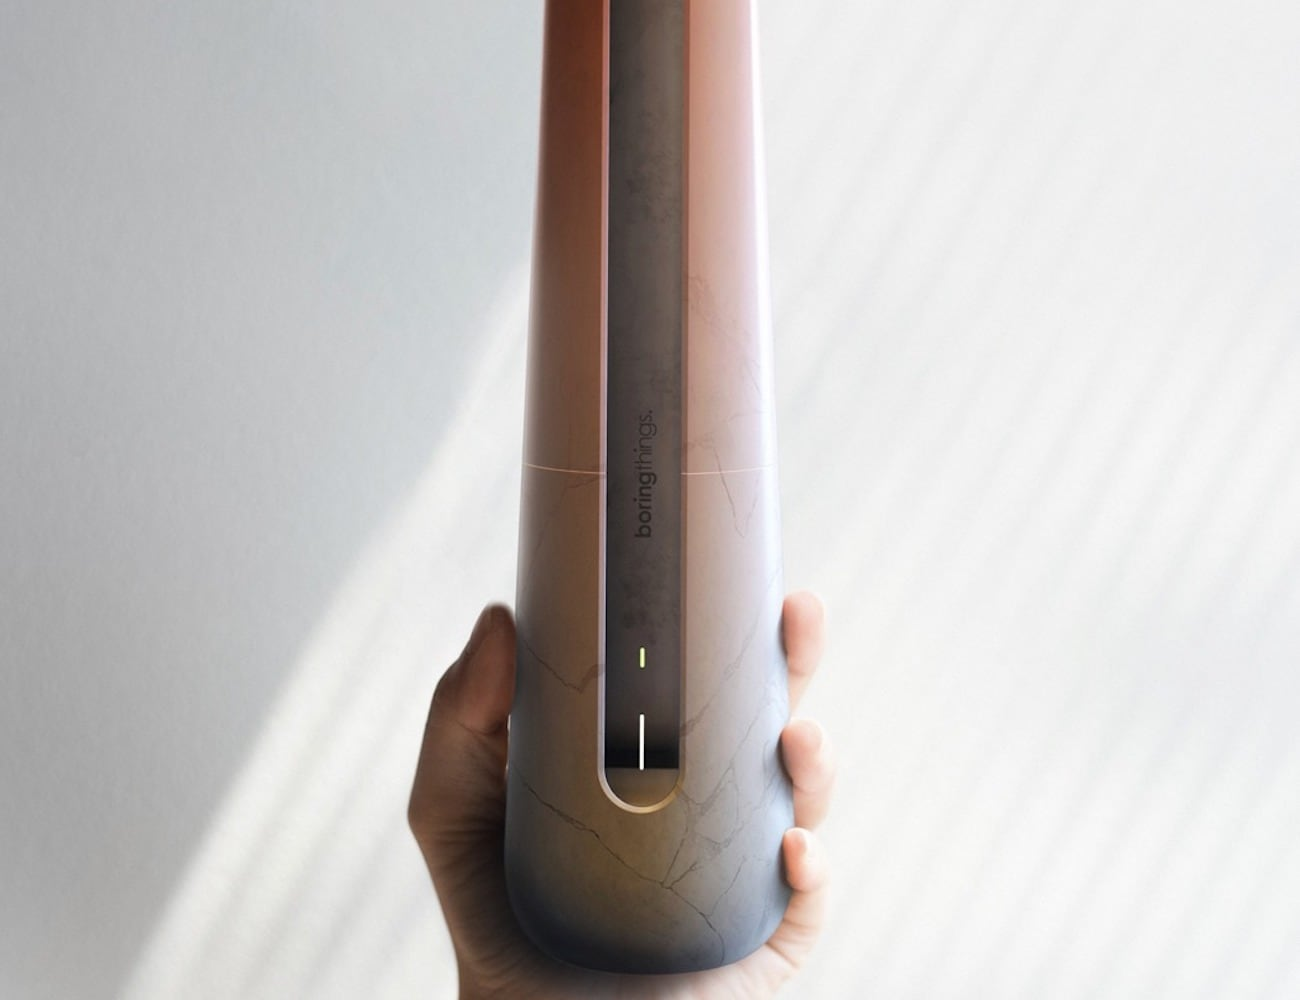 Drip Sculptural Handheld Vacuum Cleaner